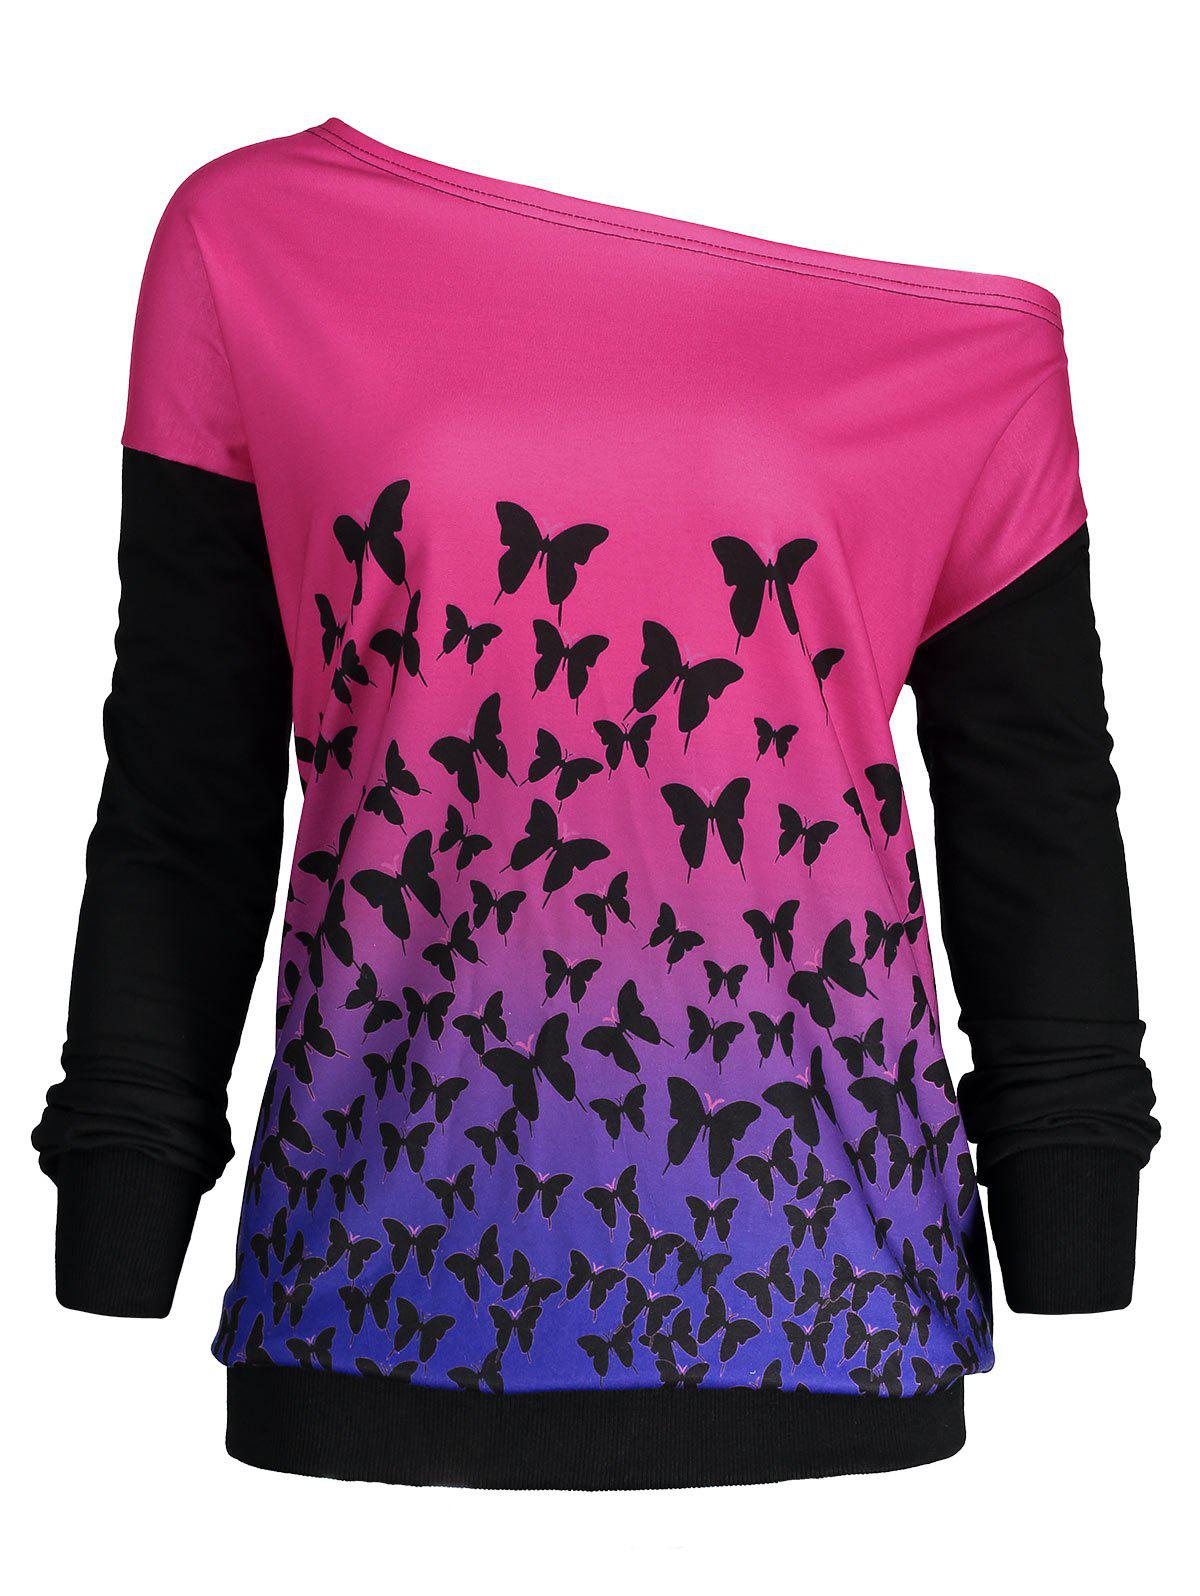 Butterfly Ombre Print One Shoulder SweatshirtWOMEN<br><br>Size: 5XL; Color: GRENADINE; Material: Polyester,Spandex; Shirt Length: Regular; Sleeve Length: Full; Style: Fashion; Pattern Style: Ombre; Season: Fall,Spring; Weight: 0.3000kg; Package Contents: 1 x Sweatshirt;